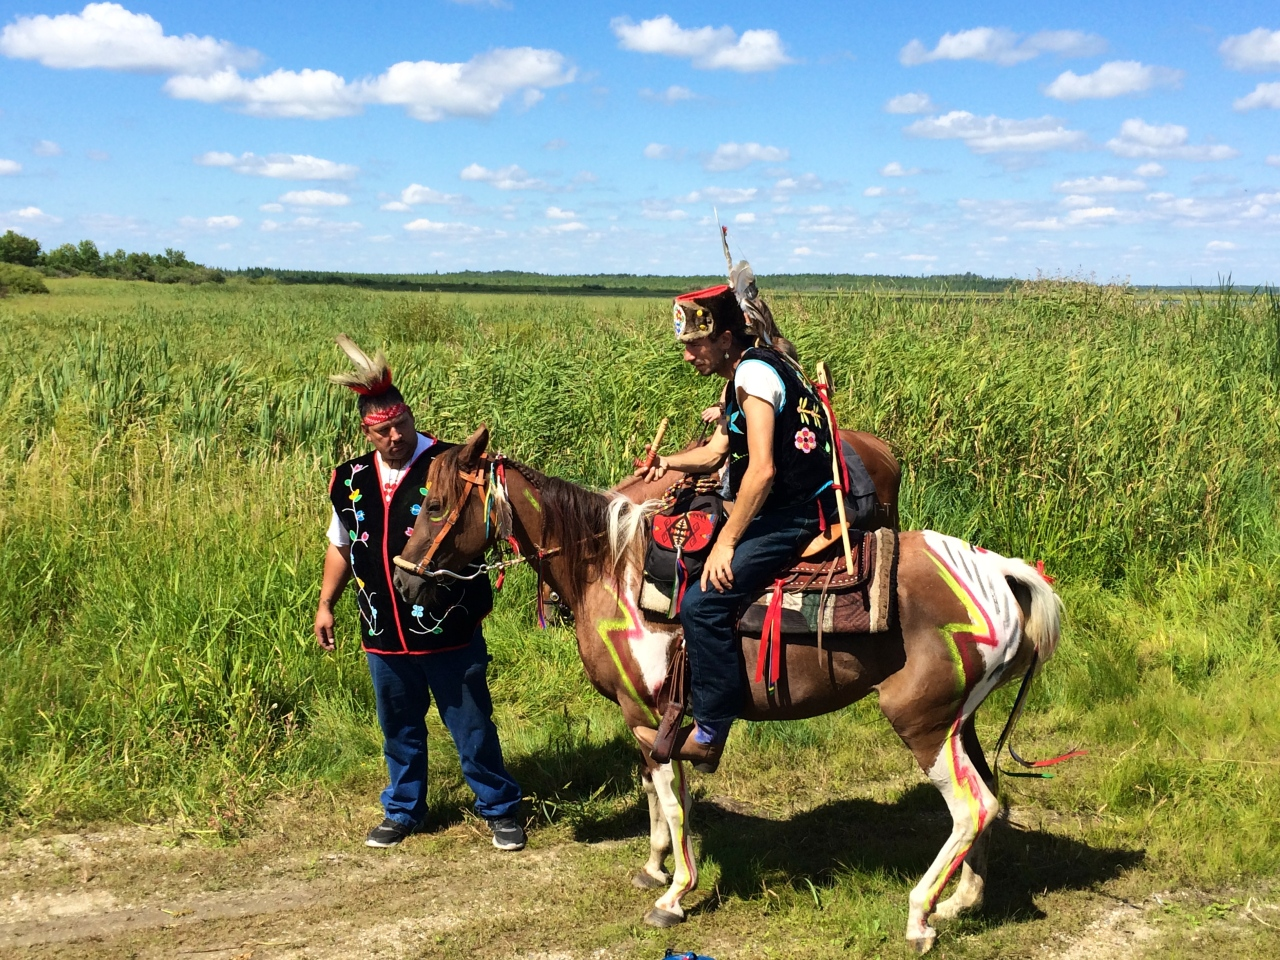 Honor The Earth, Pipeline Ride, Saving Minnesota's Water and Wild Rice